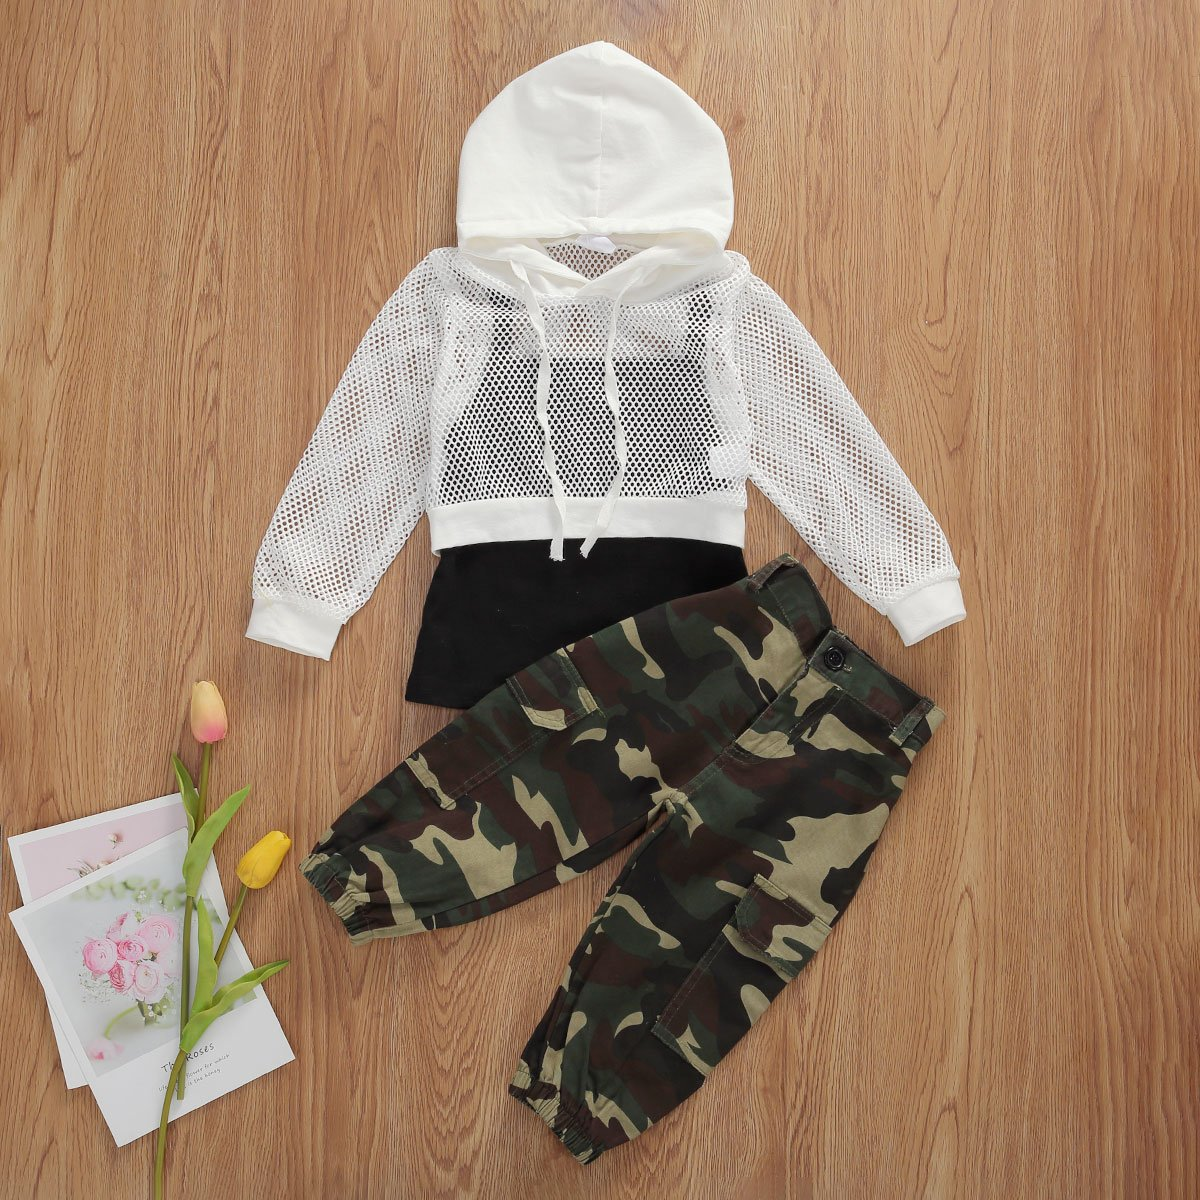 Camo mesh hooded set - Lillys little luxuries